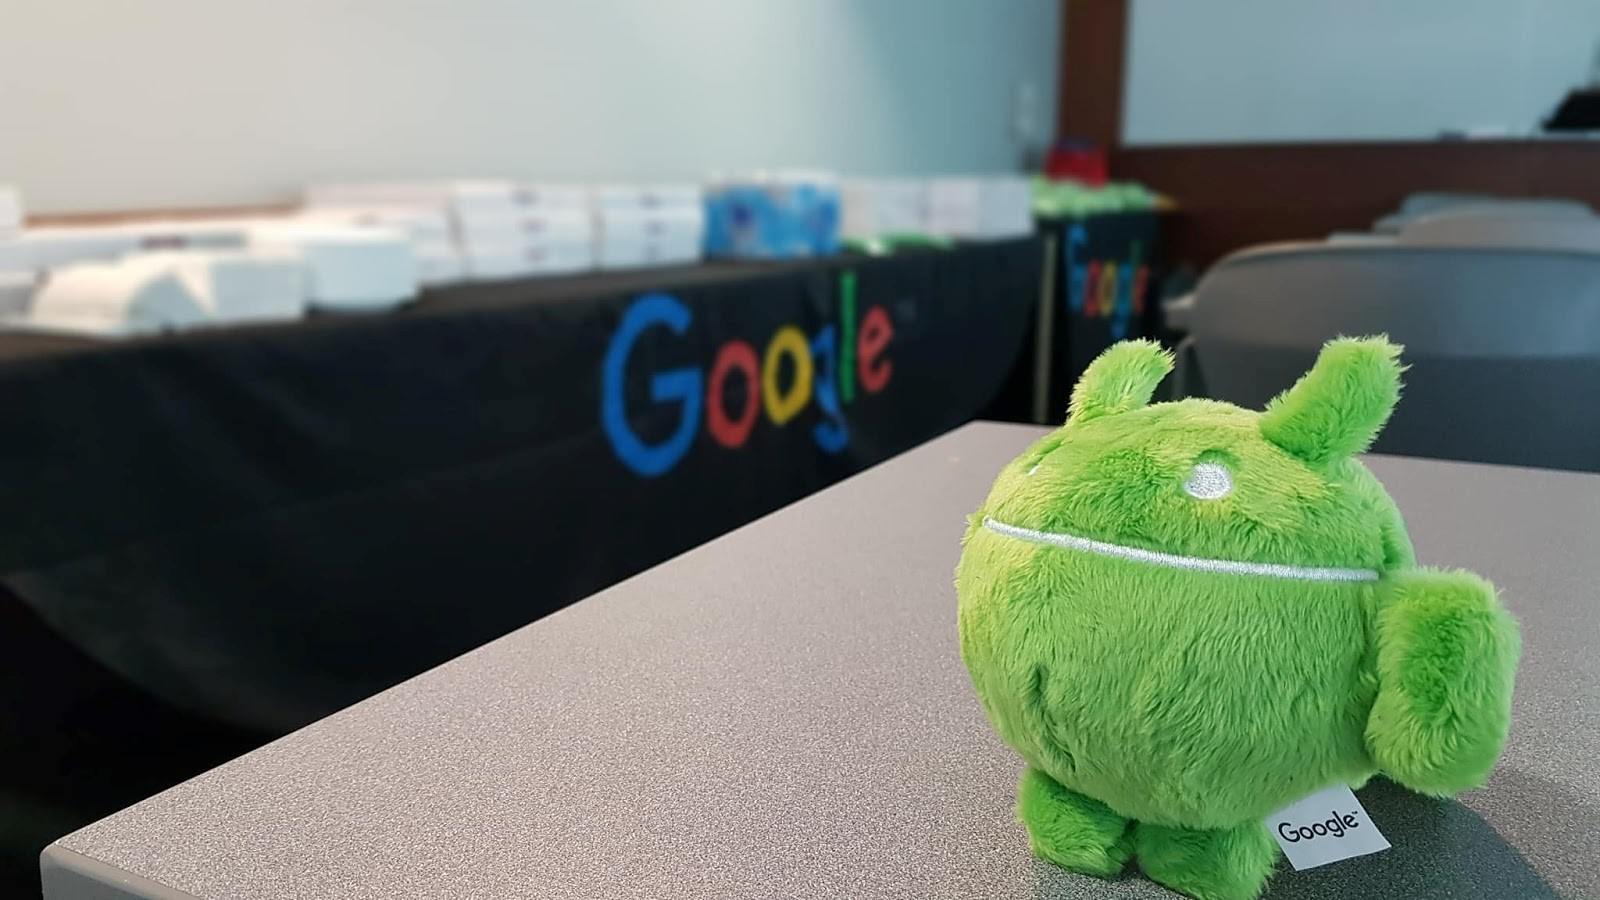 Google stuffed animal.